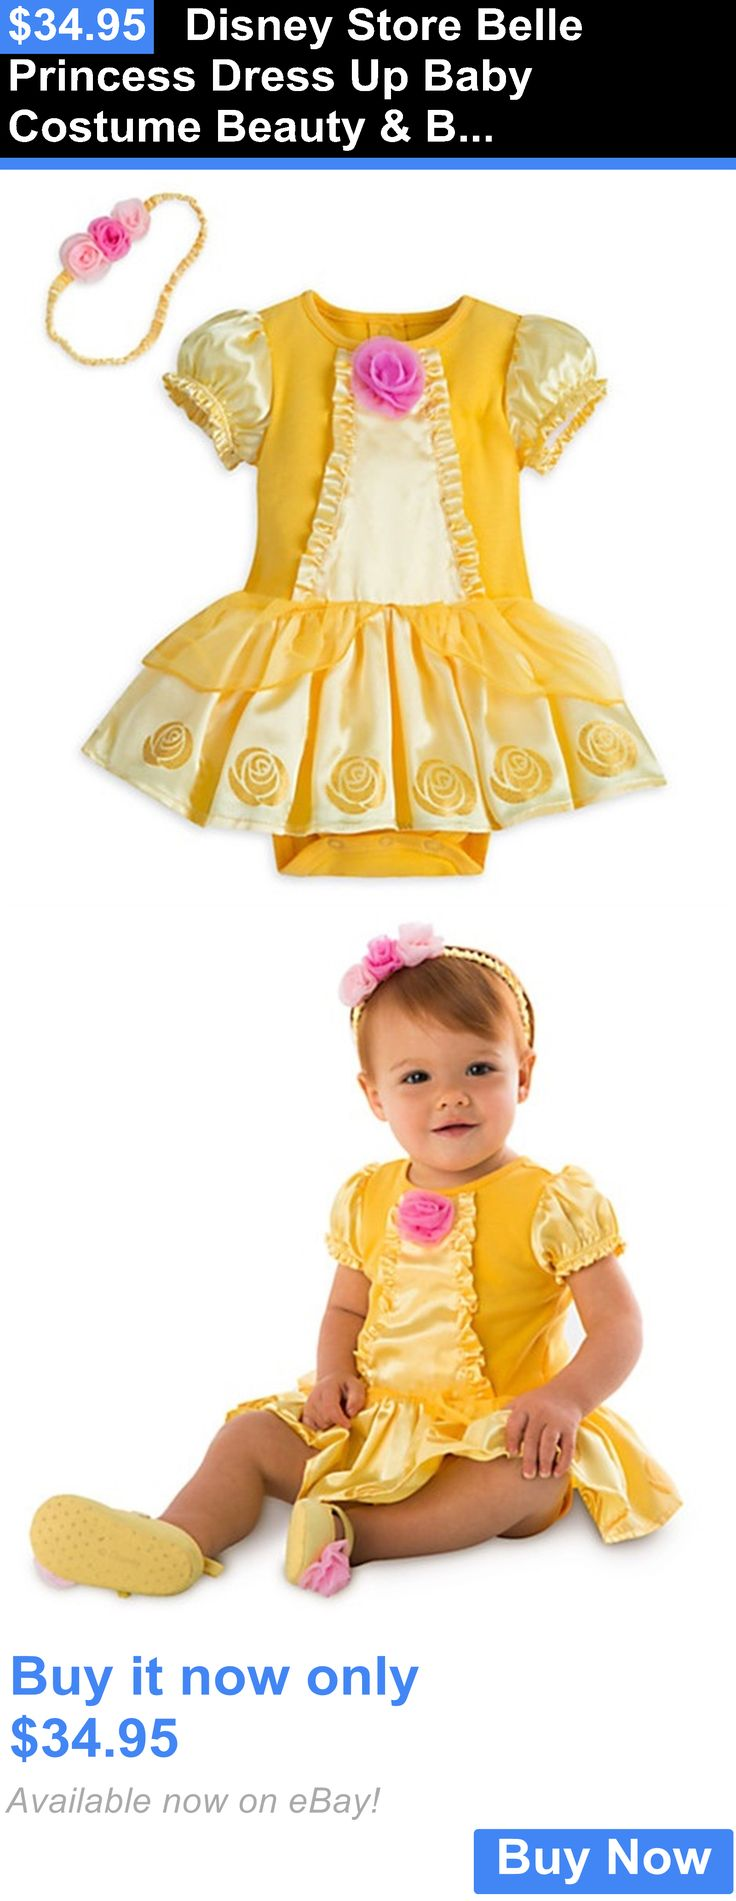 Halloween Costumes Kids: Disney Store Belle Princess Dress Up Baby Costume Beauty And Beast Halloween New BUY IT NOW ONLY: $34.95